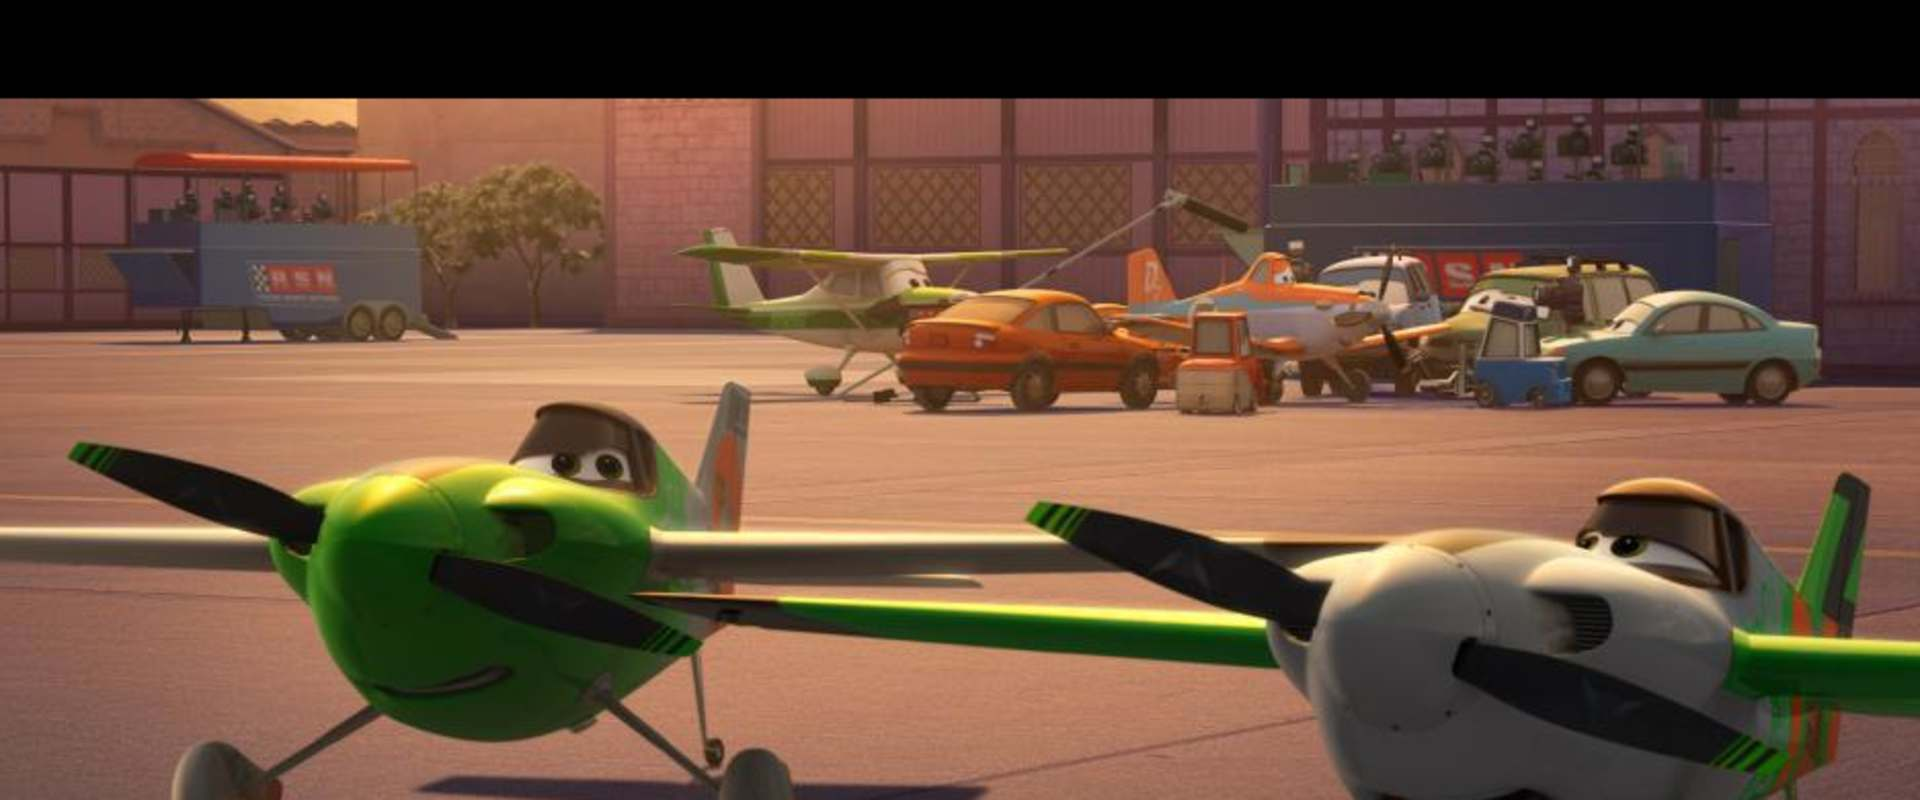 Planes background 2